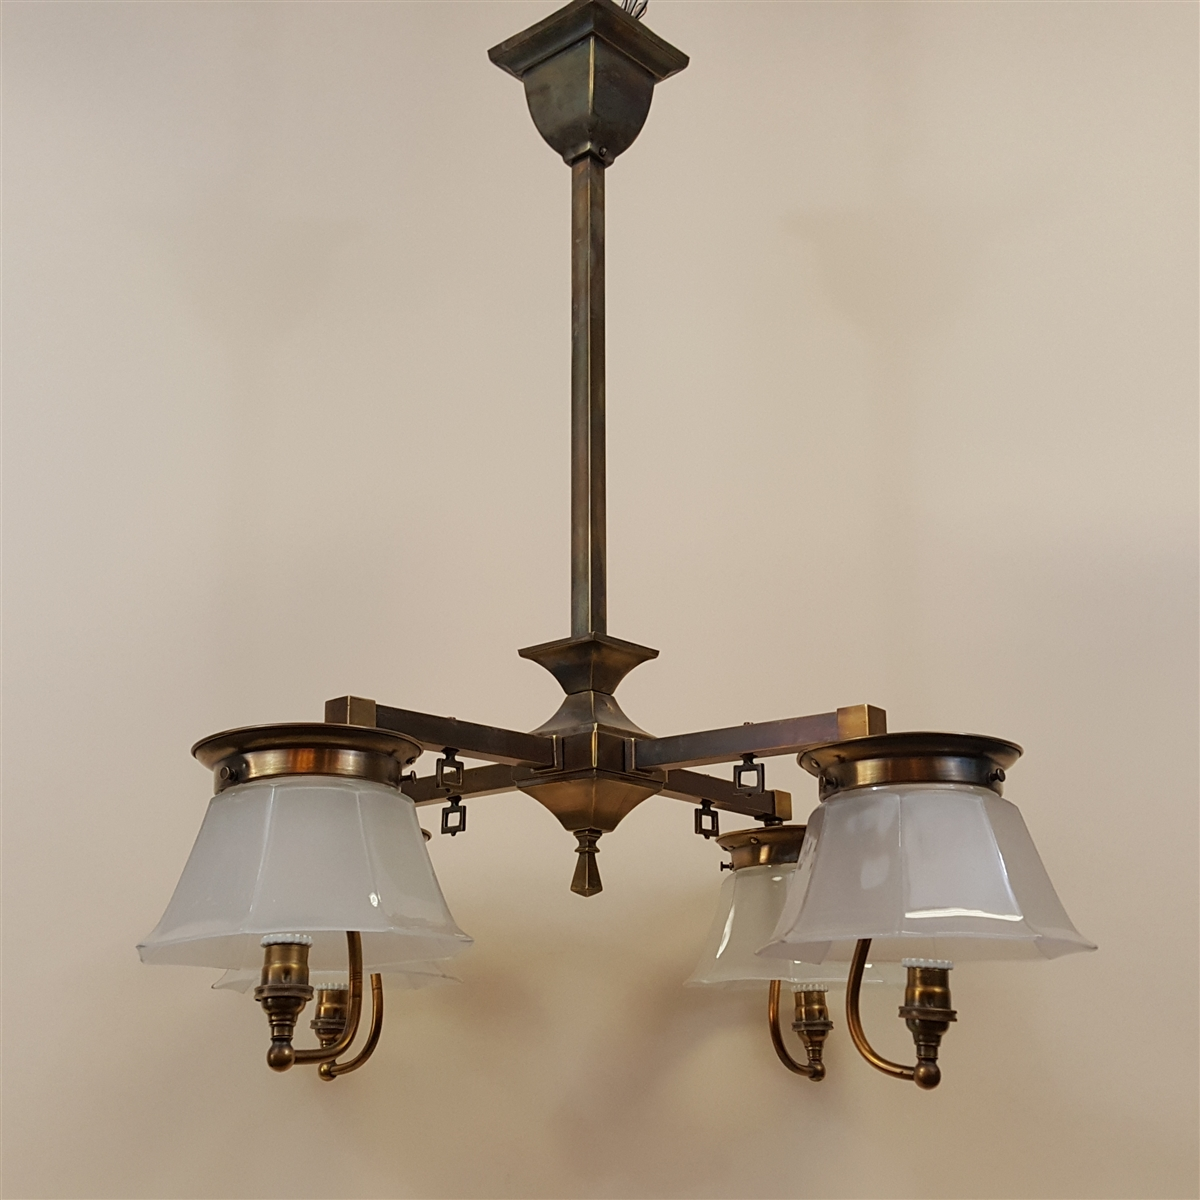 Four light arts and crafts chandelier early four light arts and crafts chandelier arubaitofo Choice Image